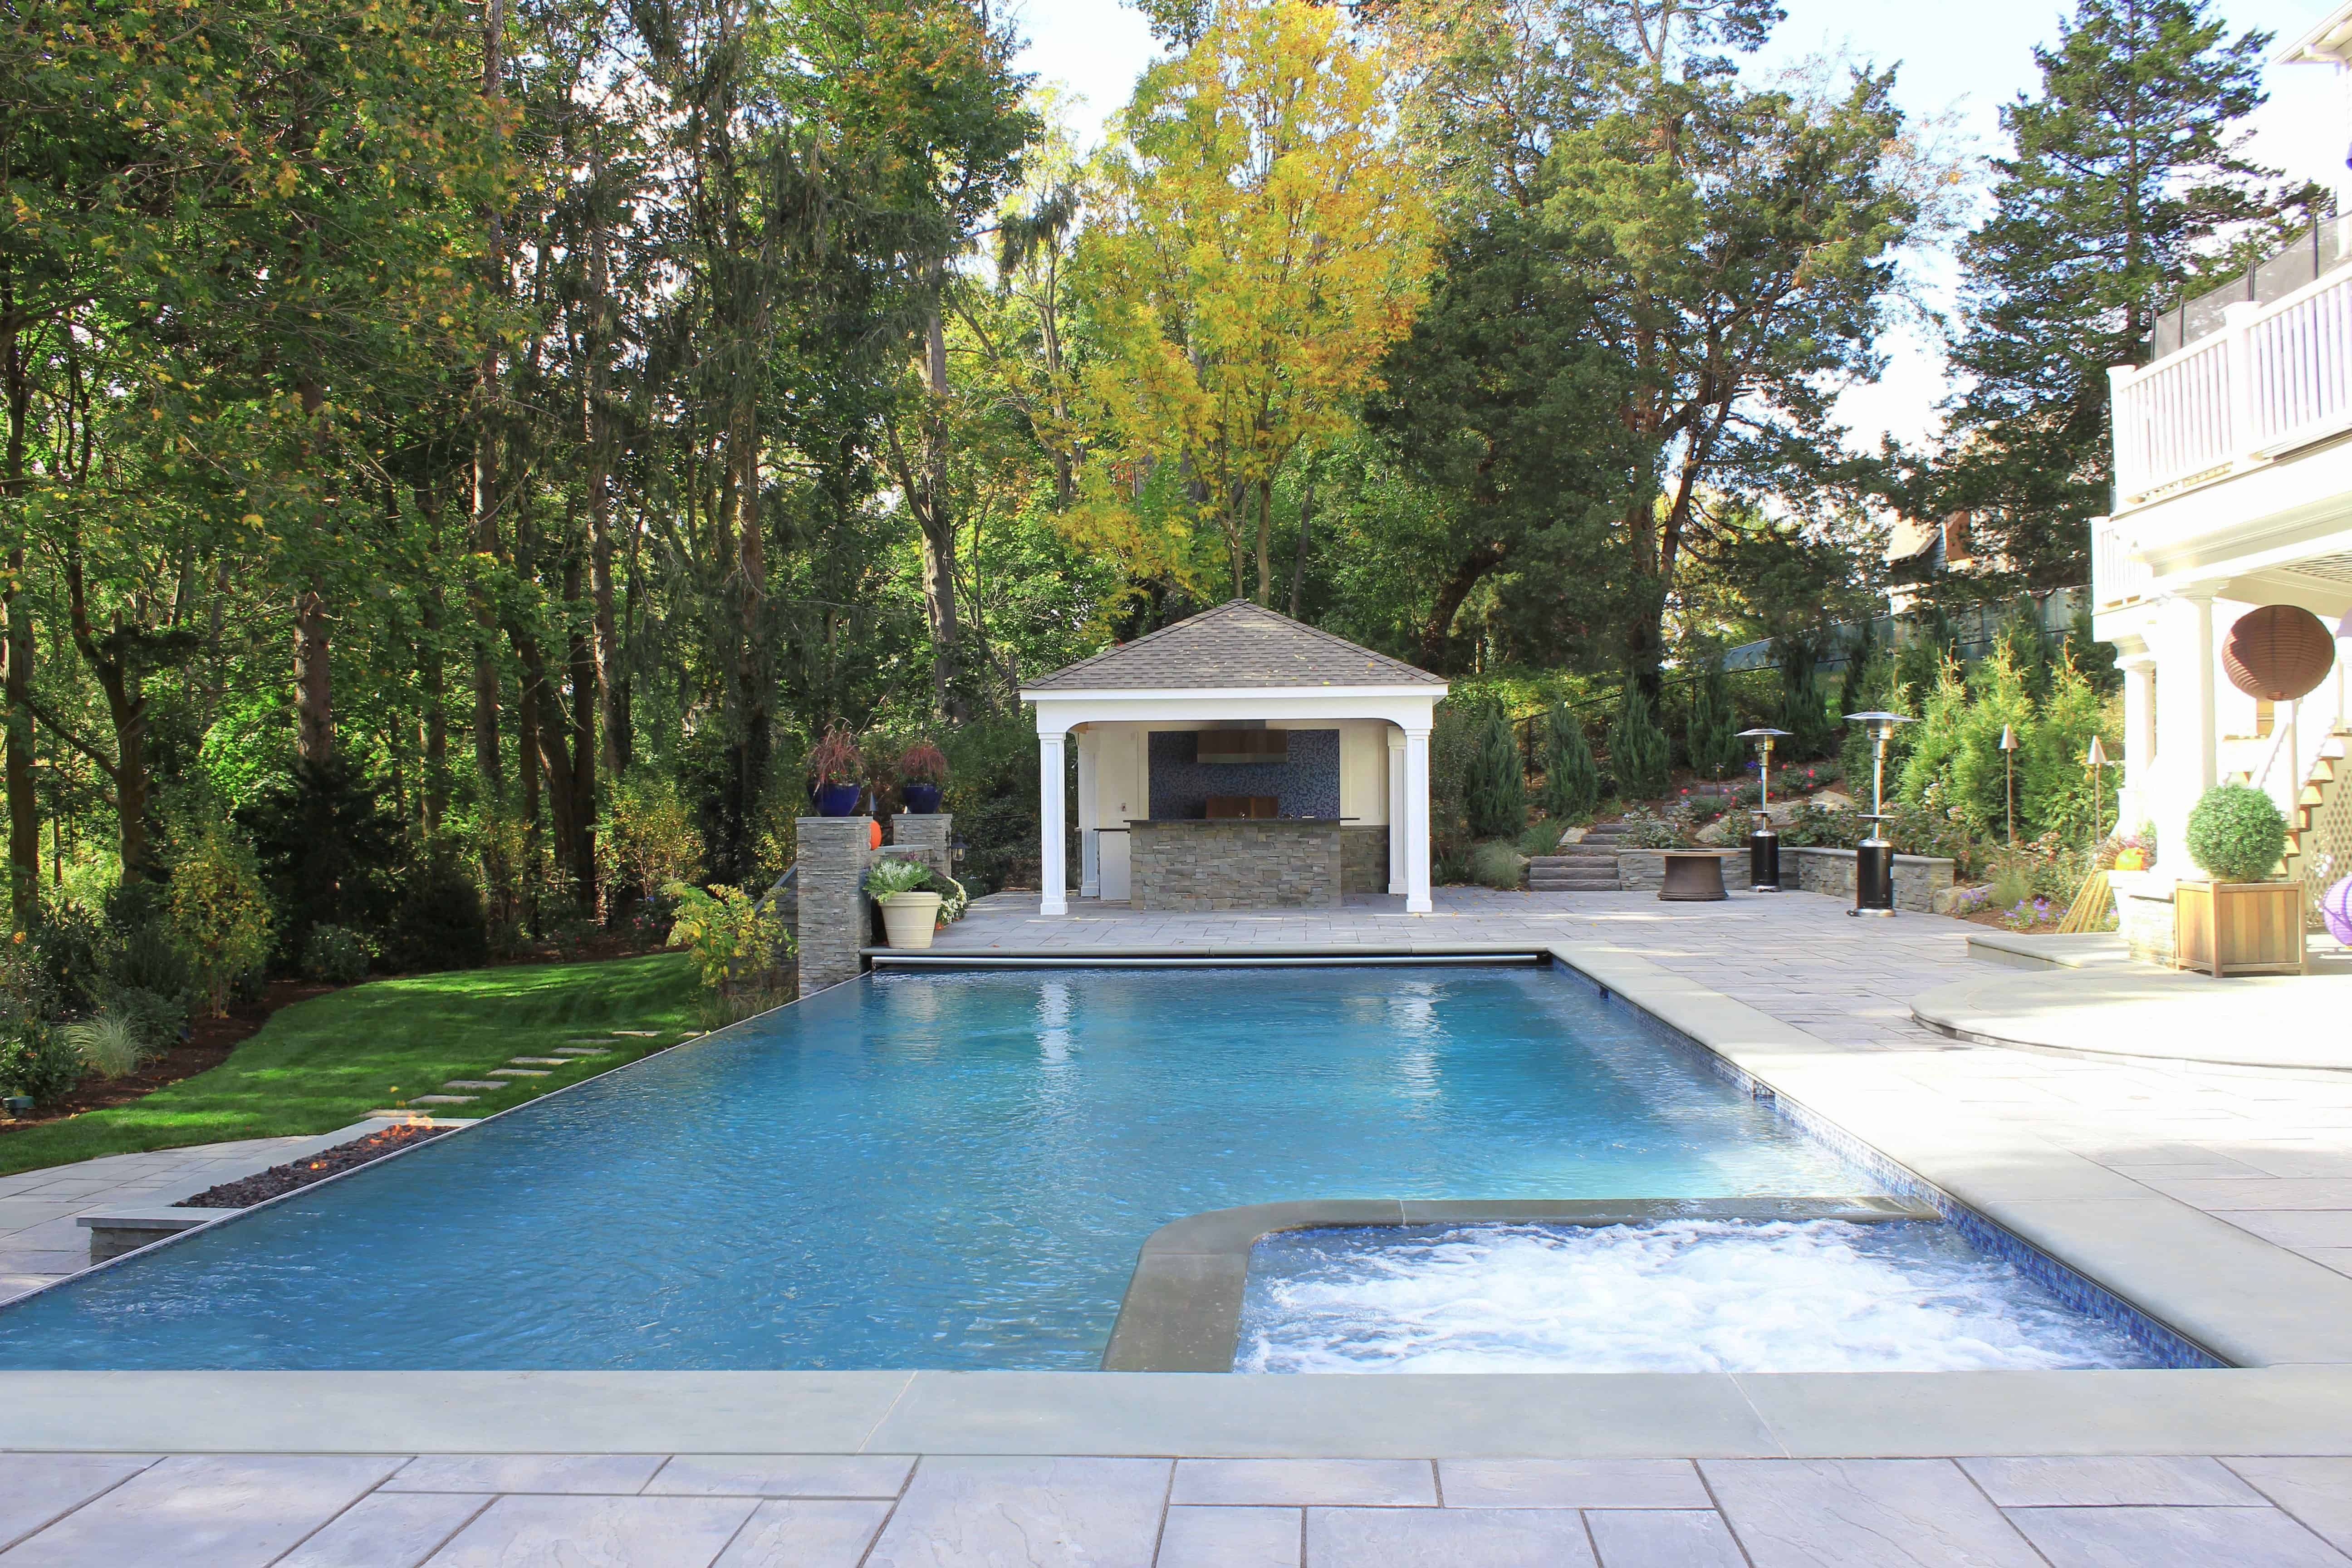 8' x 8' Custom Gunite Spa, 24' x 44' Pool with 44' Infinity Edge and Automatic Cover - Manhasset, Long Island NY